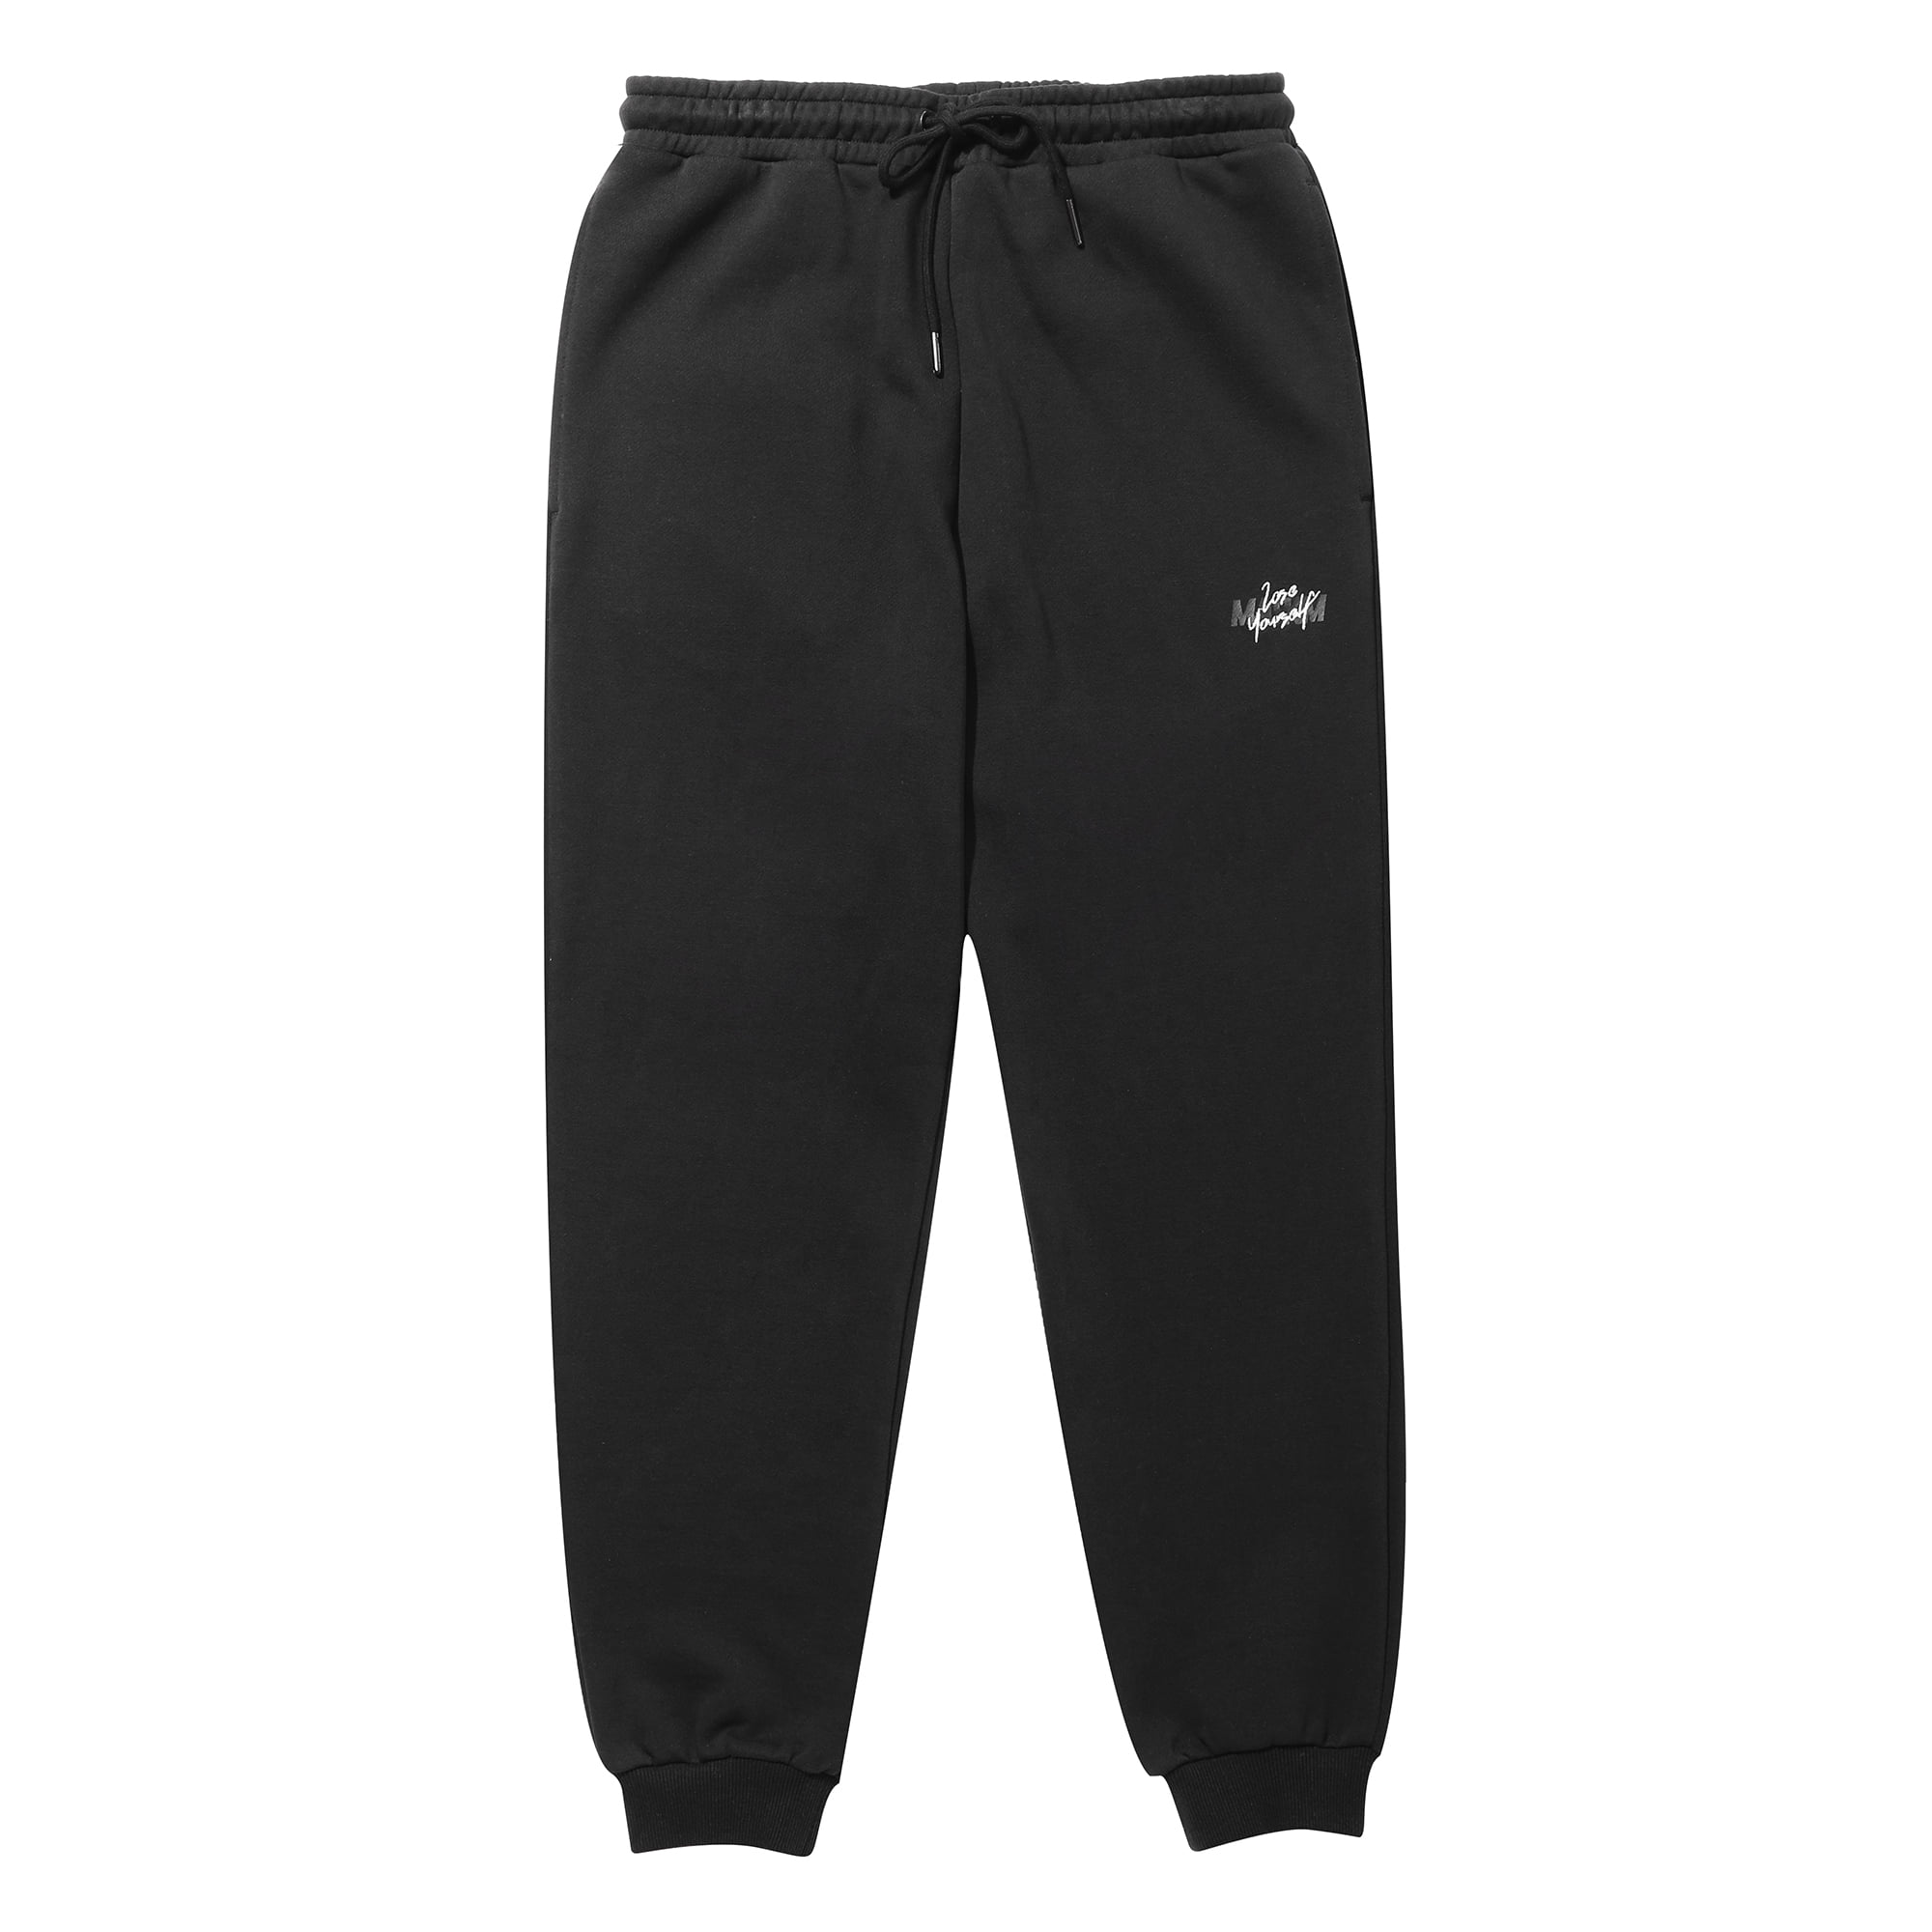 19FW MM Jogger Pants MYFBG4601